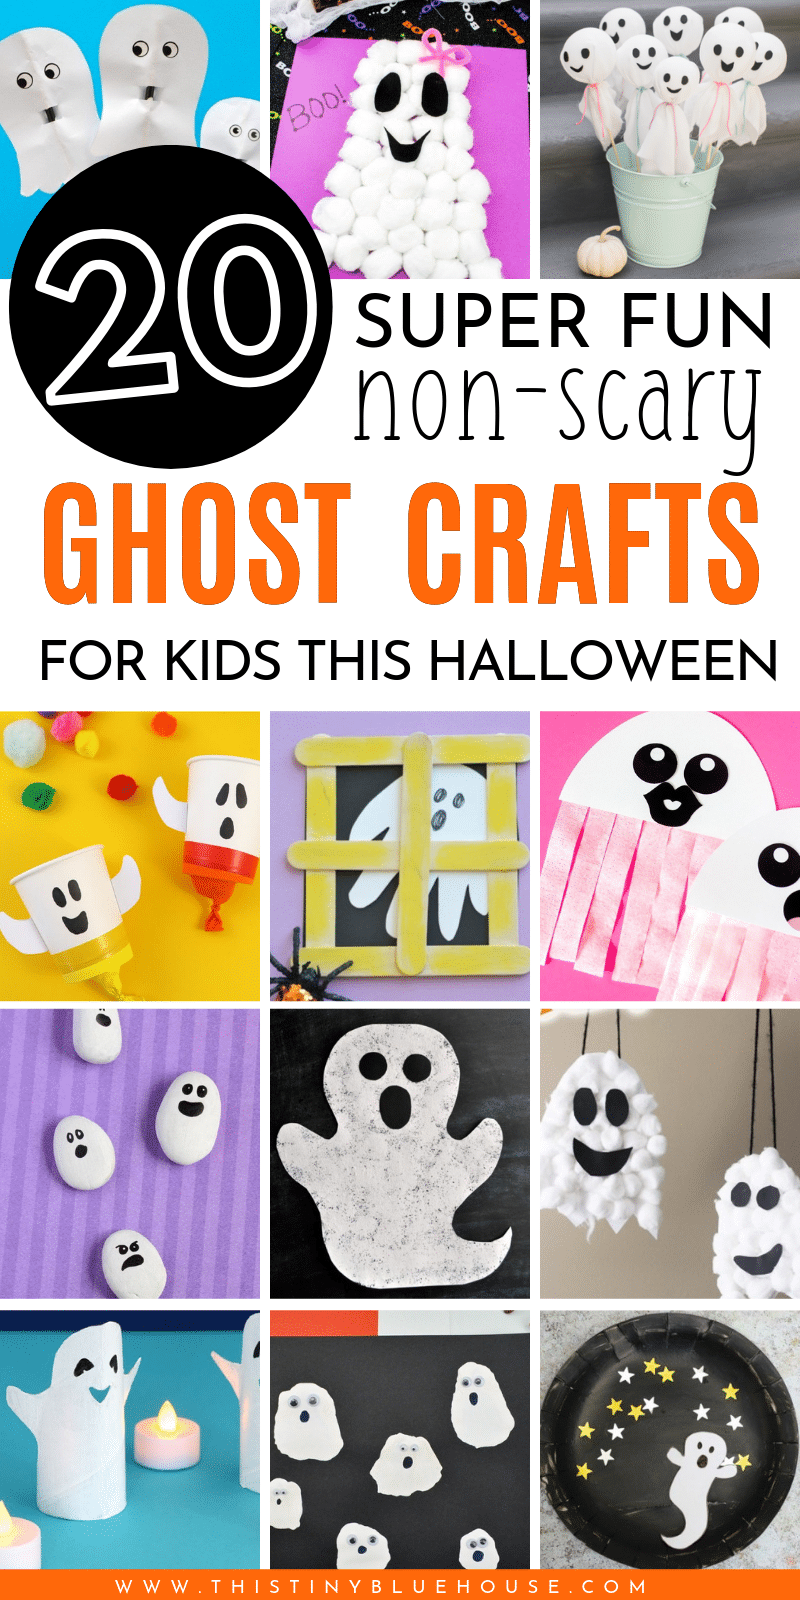 here are 30 best cute Halloween ghost crafts for kids that are easy to make and are guaranteed to provide hours of fun for kids. #halloweencrafts #DIYhalloweencrafts #easycraftsforhalloween #besthalloweencraftsforkids #ghostcraftsforkids